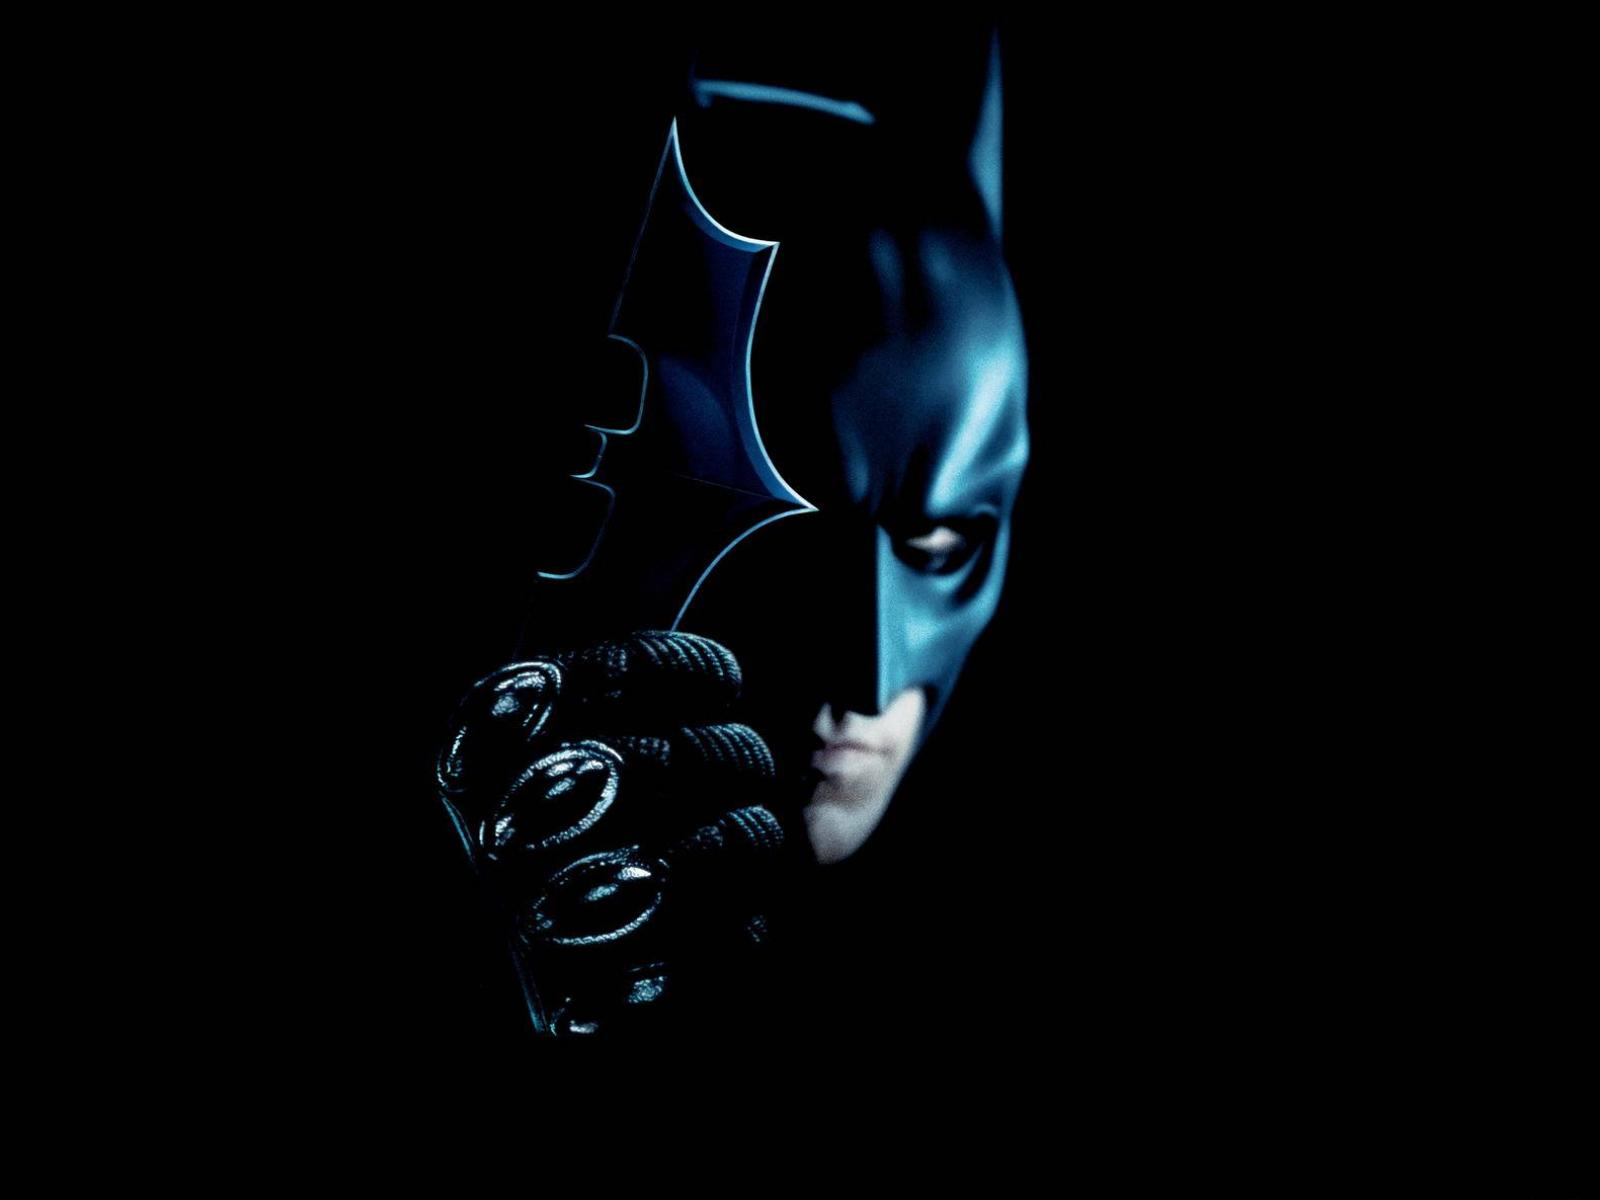 Обои The dark knight 1600x1200